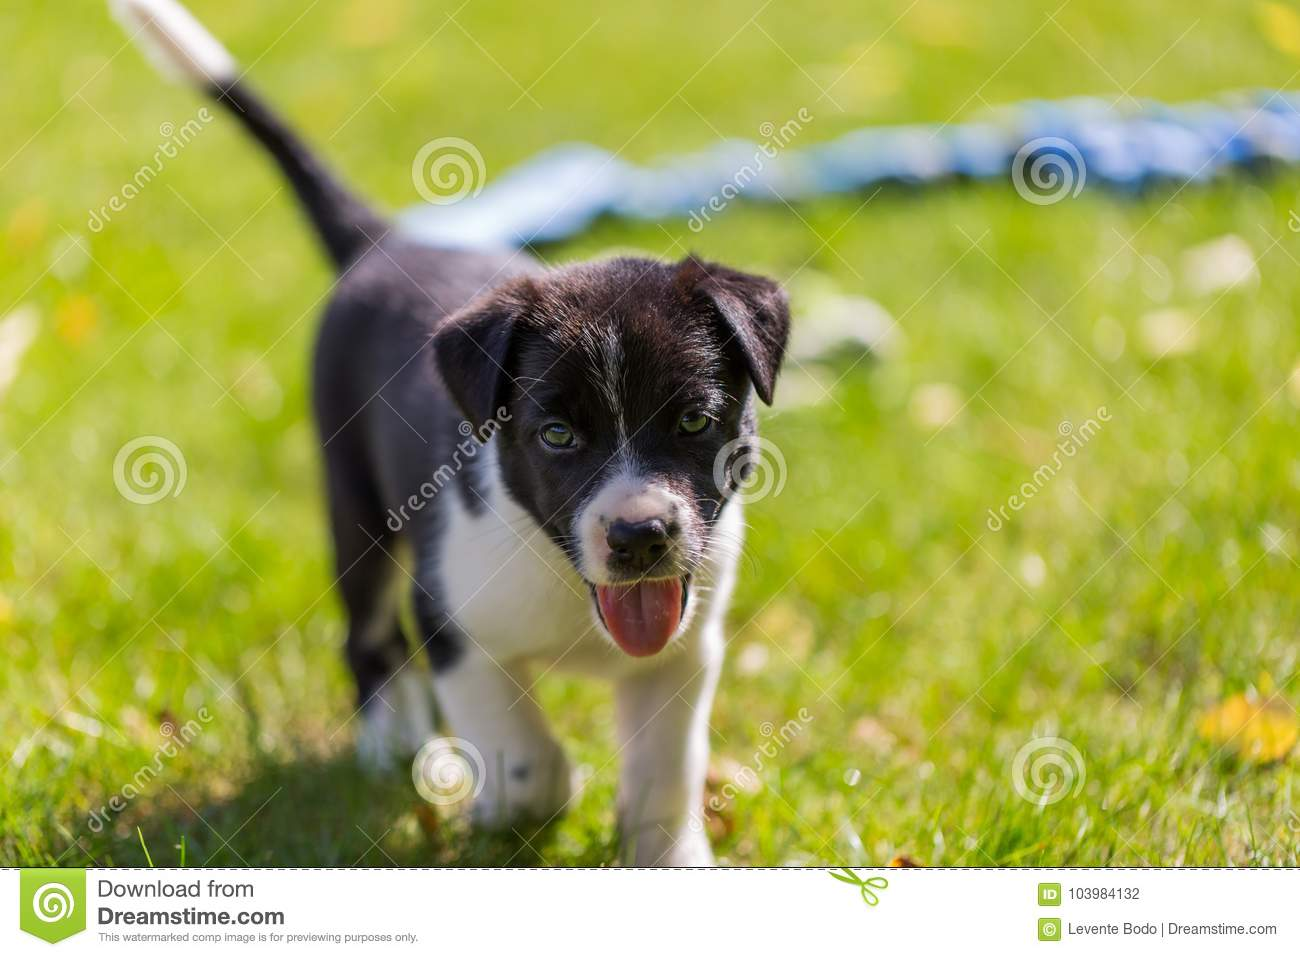 Very little puppy is running happily with floppy ears trough a garden with green grass